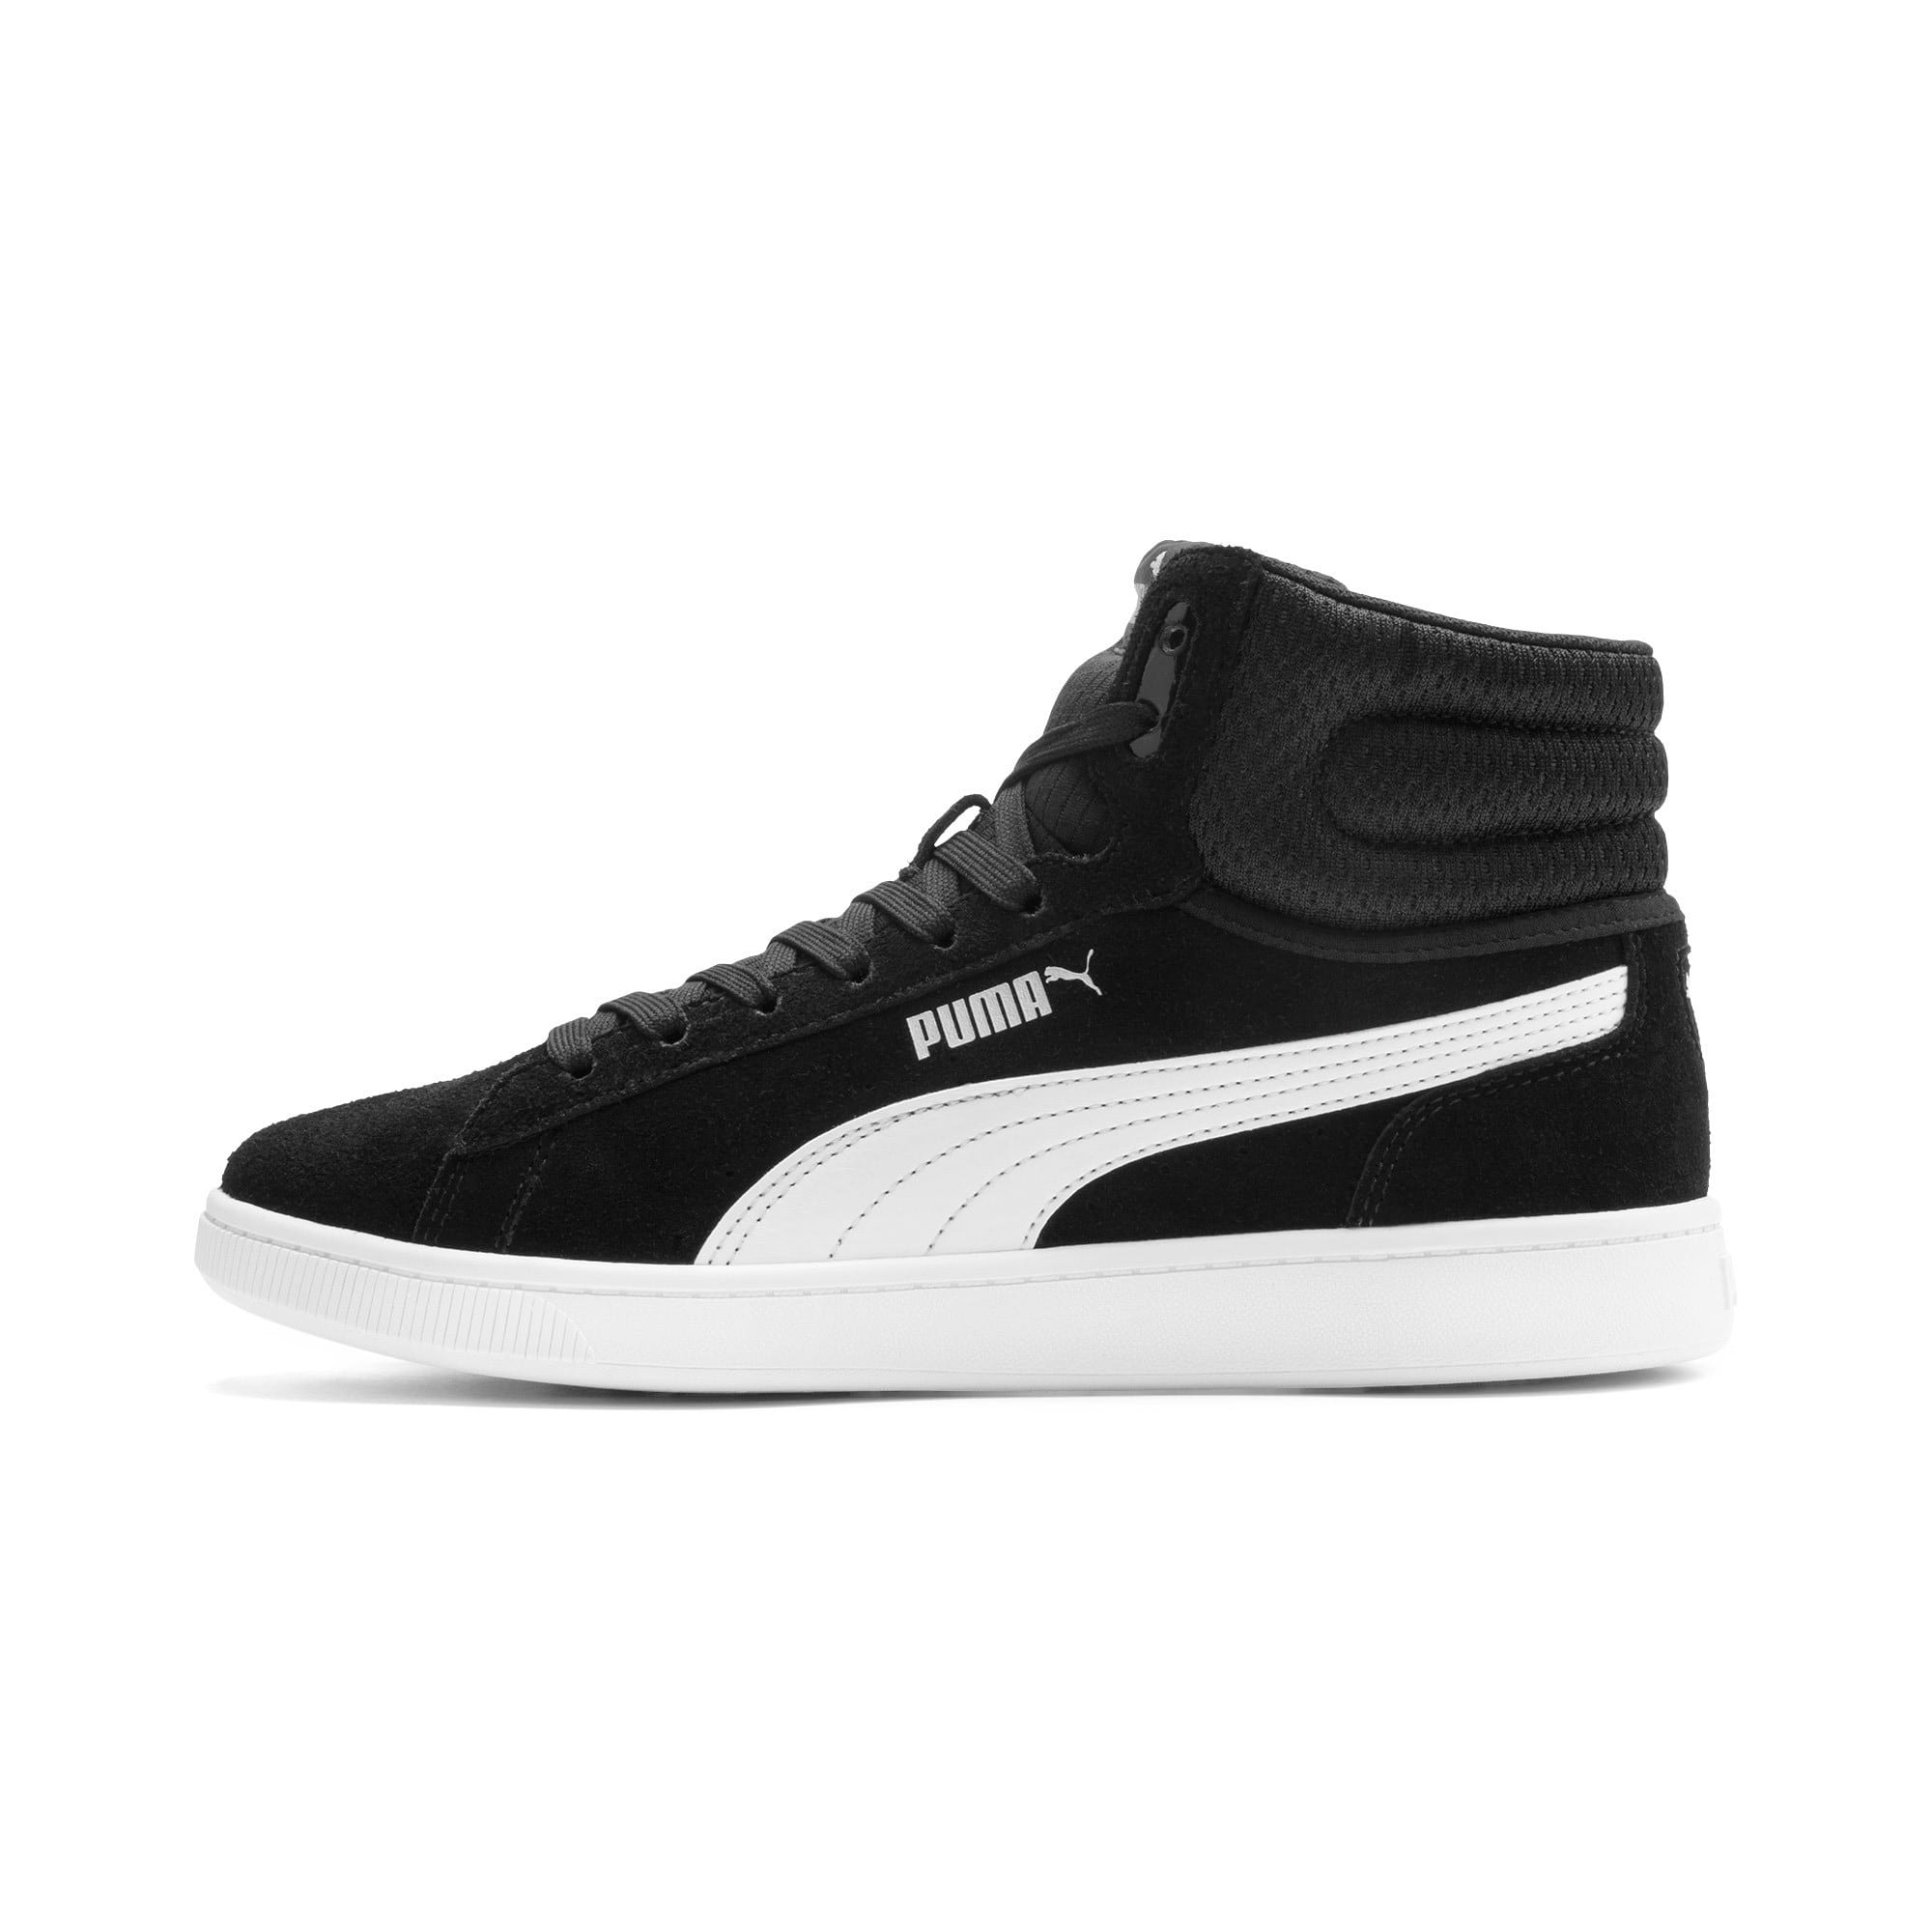 Thumbnail 1 of PUMA Vikky v2 Mid Women's Sneakers, Puma Black-White-Silver-Pink, medium